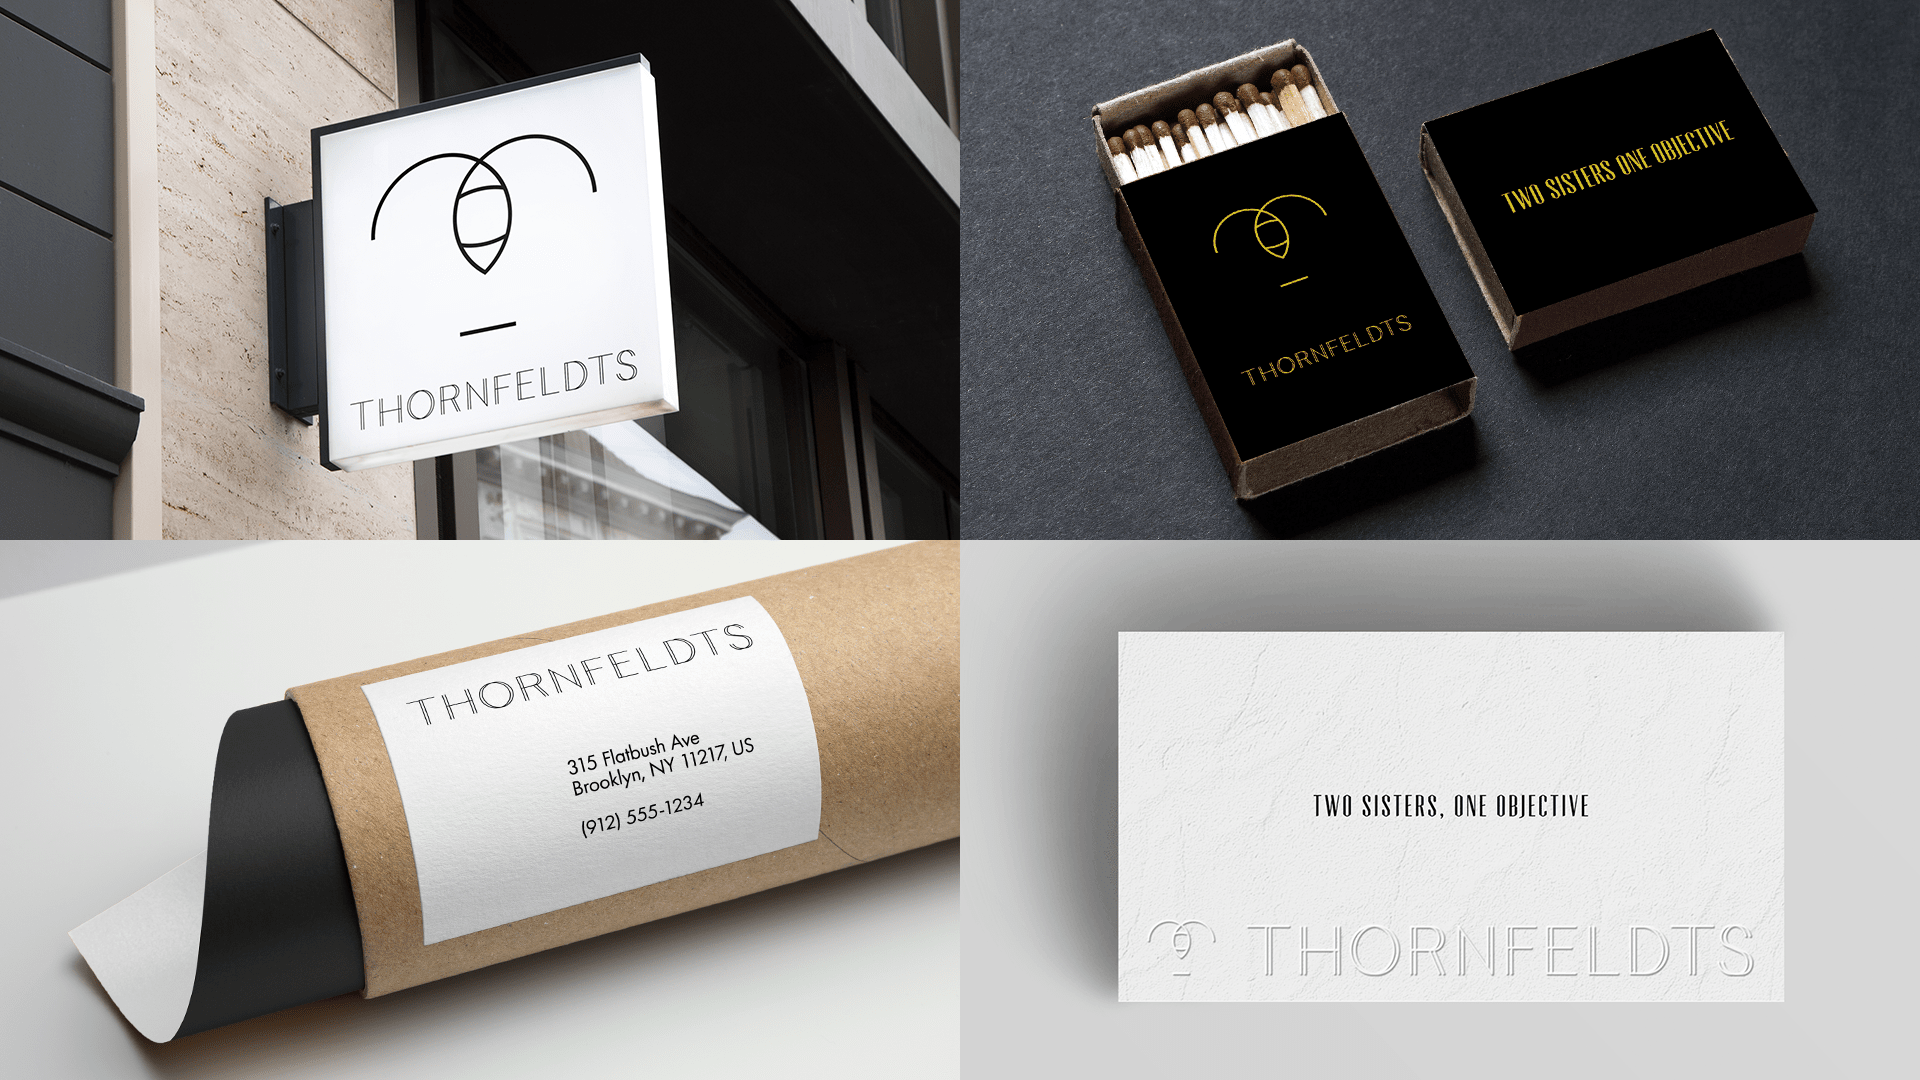 thornfeldts-elements-compressed